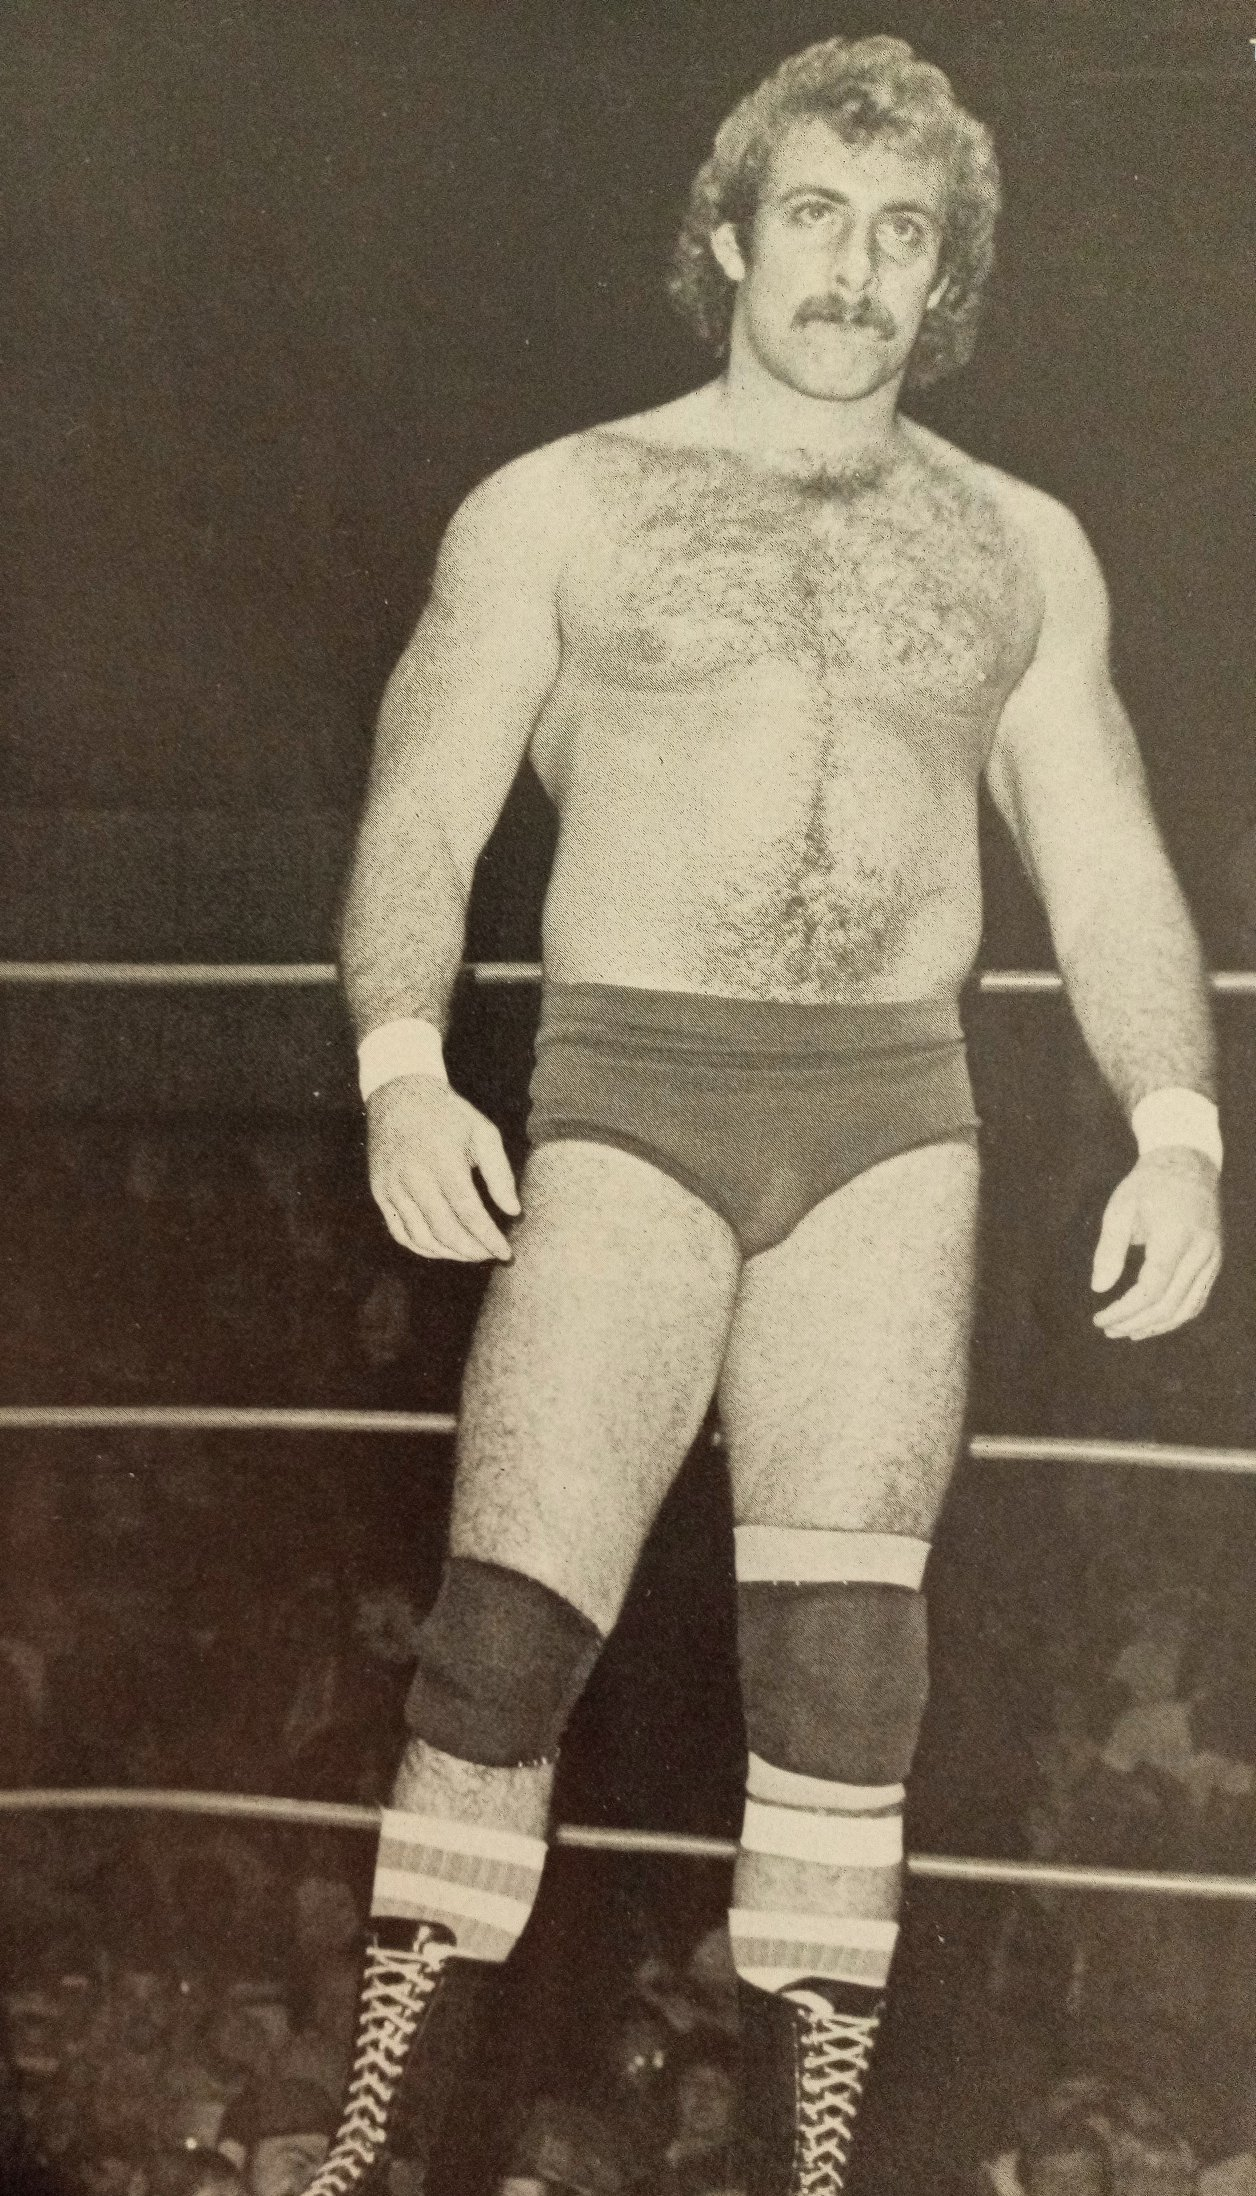 Young Terry Allen back in 1983. Allen would soon become better known as Magnum TA.